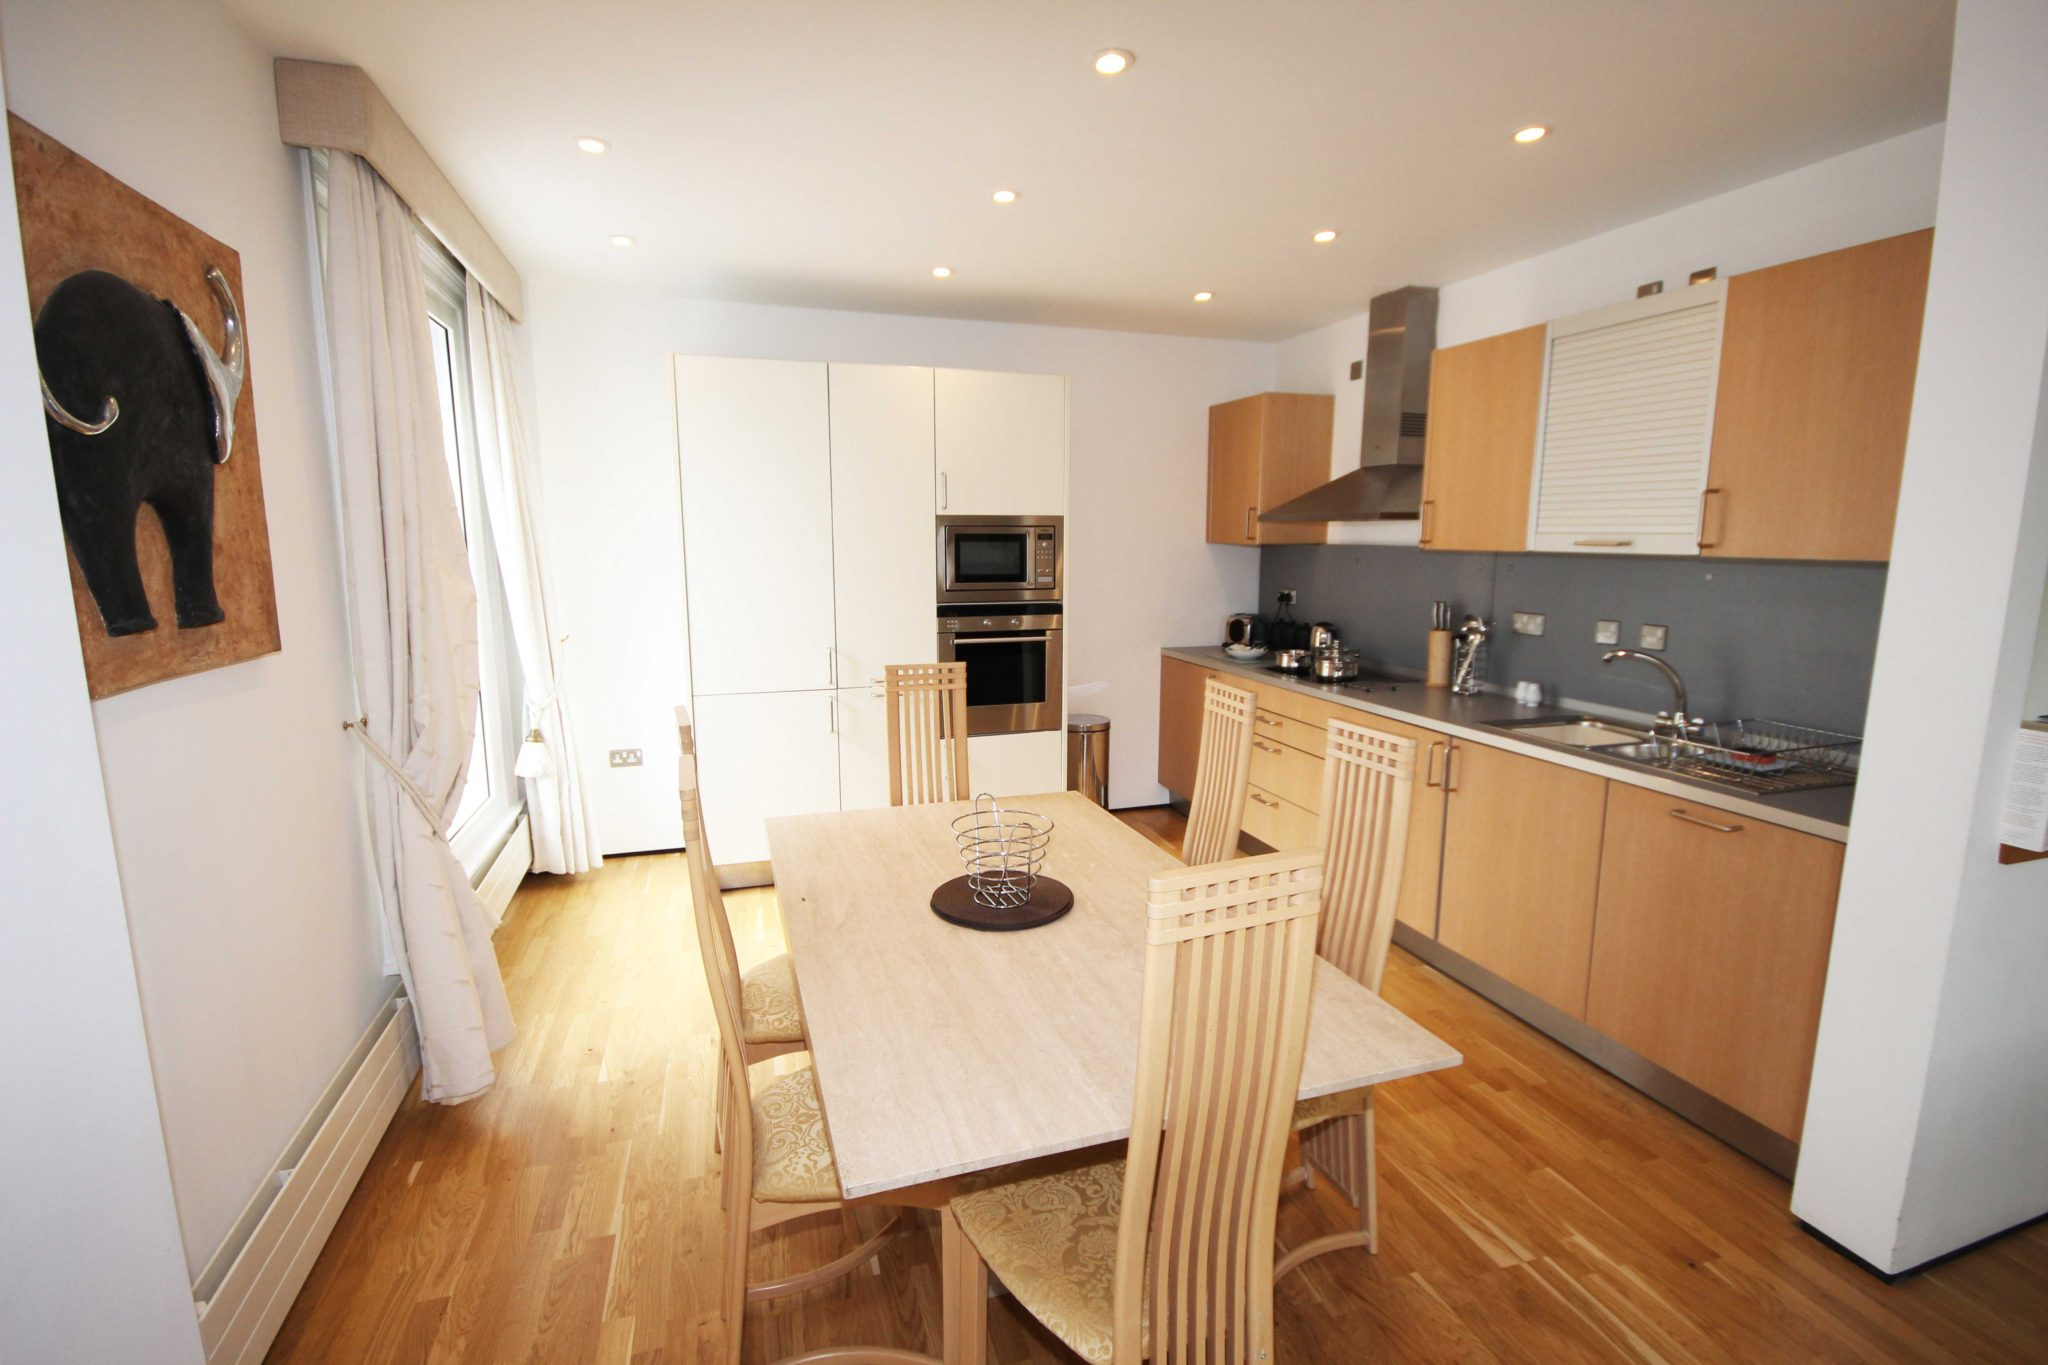 Newcastle-Short-Let-Apartments-UK-available-Now!-Book-Corporate-Serviced-Accommodation-in-North-East-England-today!-Parking,Wifi,-5*-Service,-All-bills-incl-|-Urban-Stay